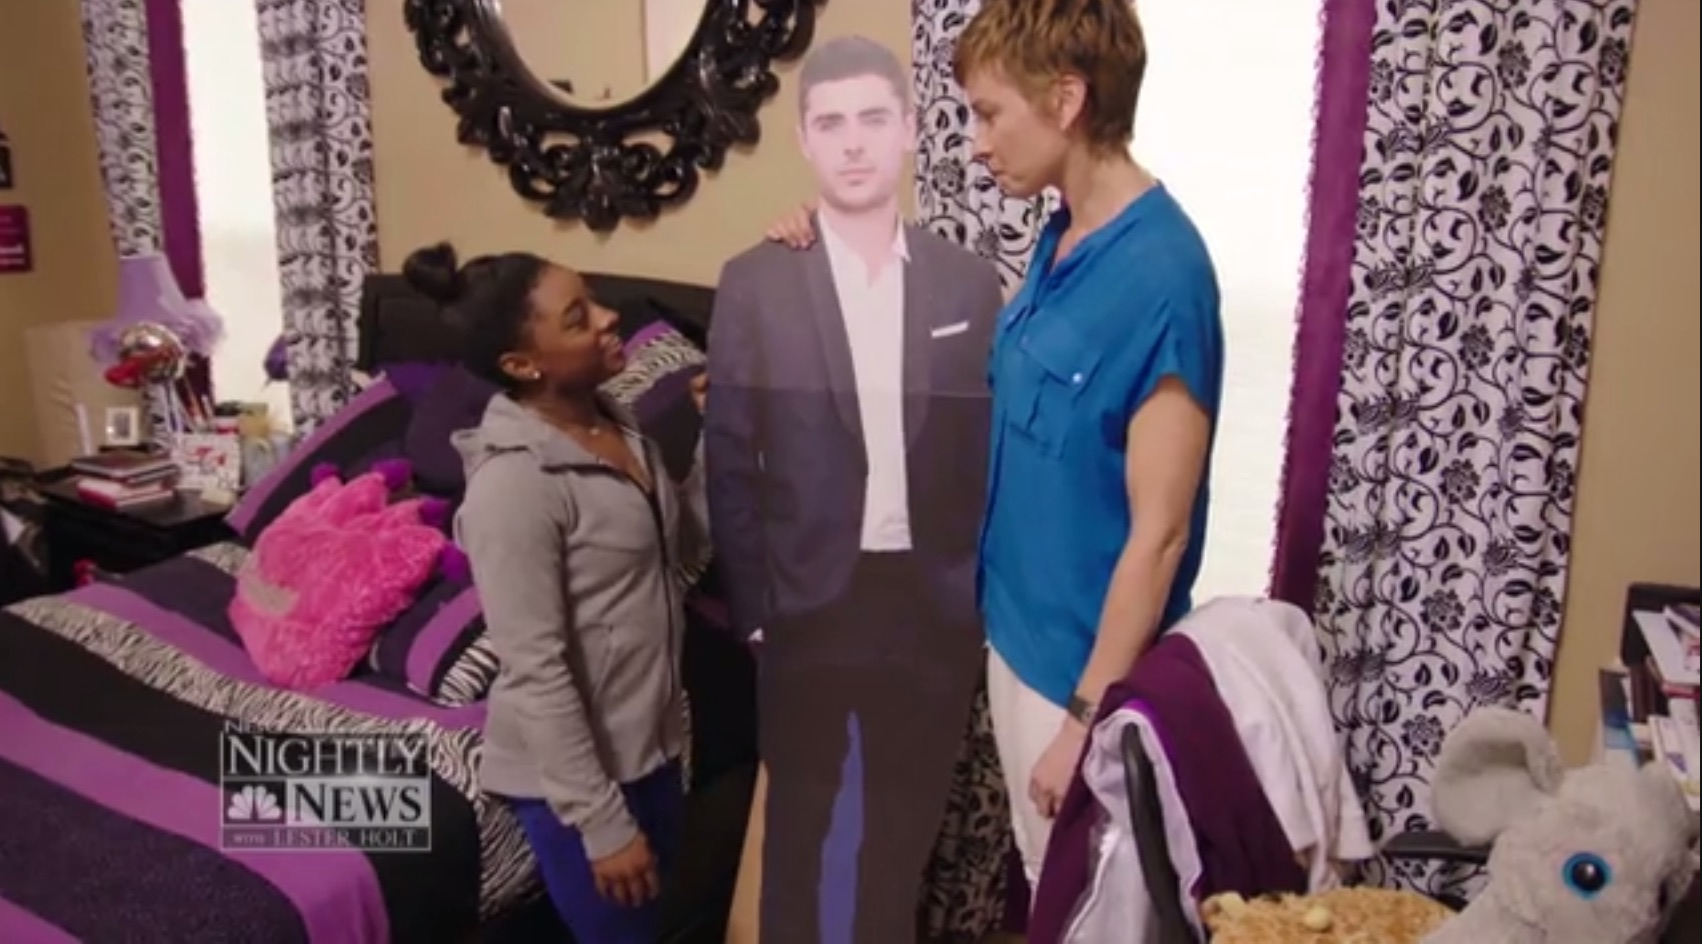 Simone Biles has a life-size Zac Efron cutout and we're losing it